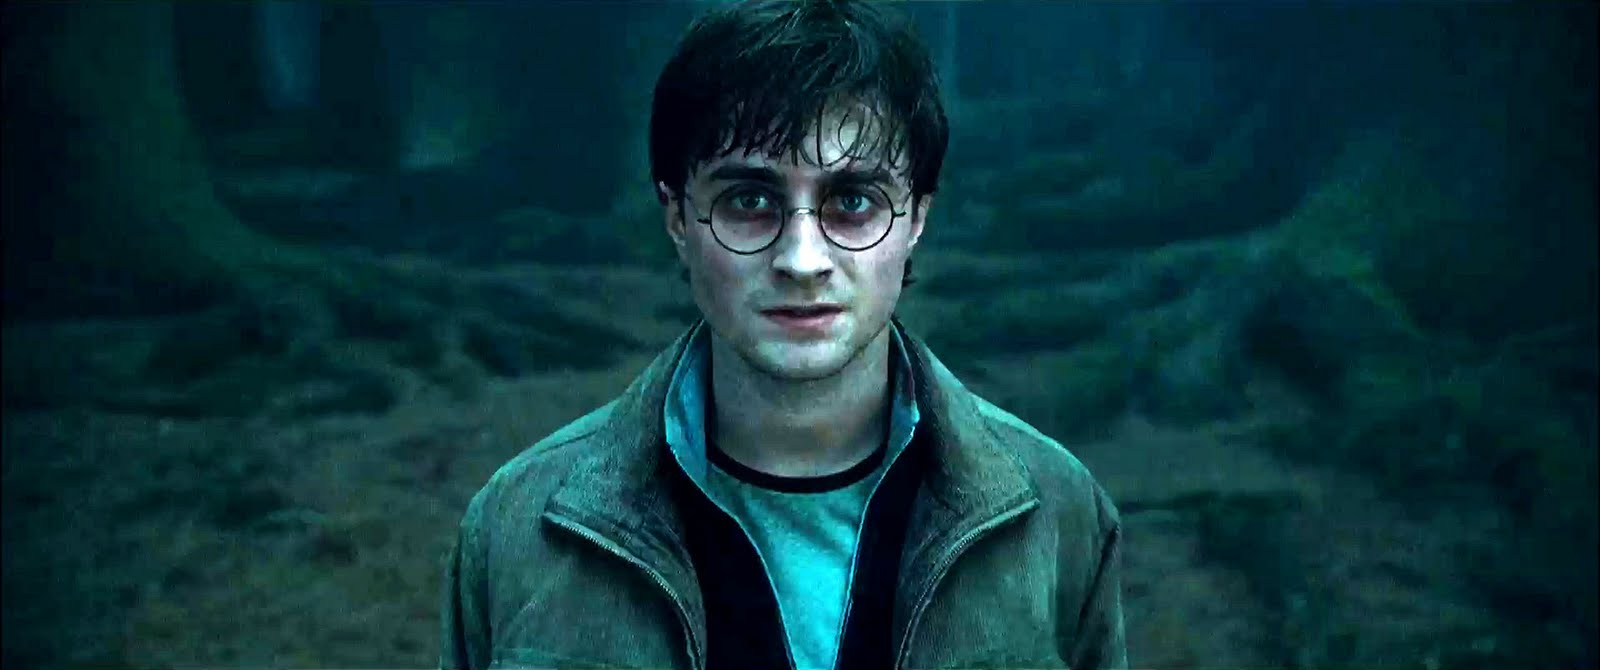 Image result for harry potter deathly hallows part 2